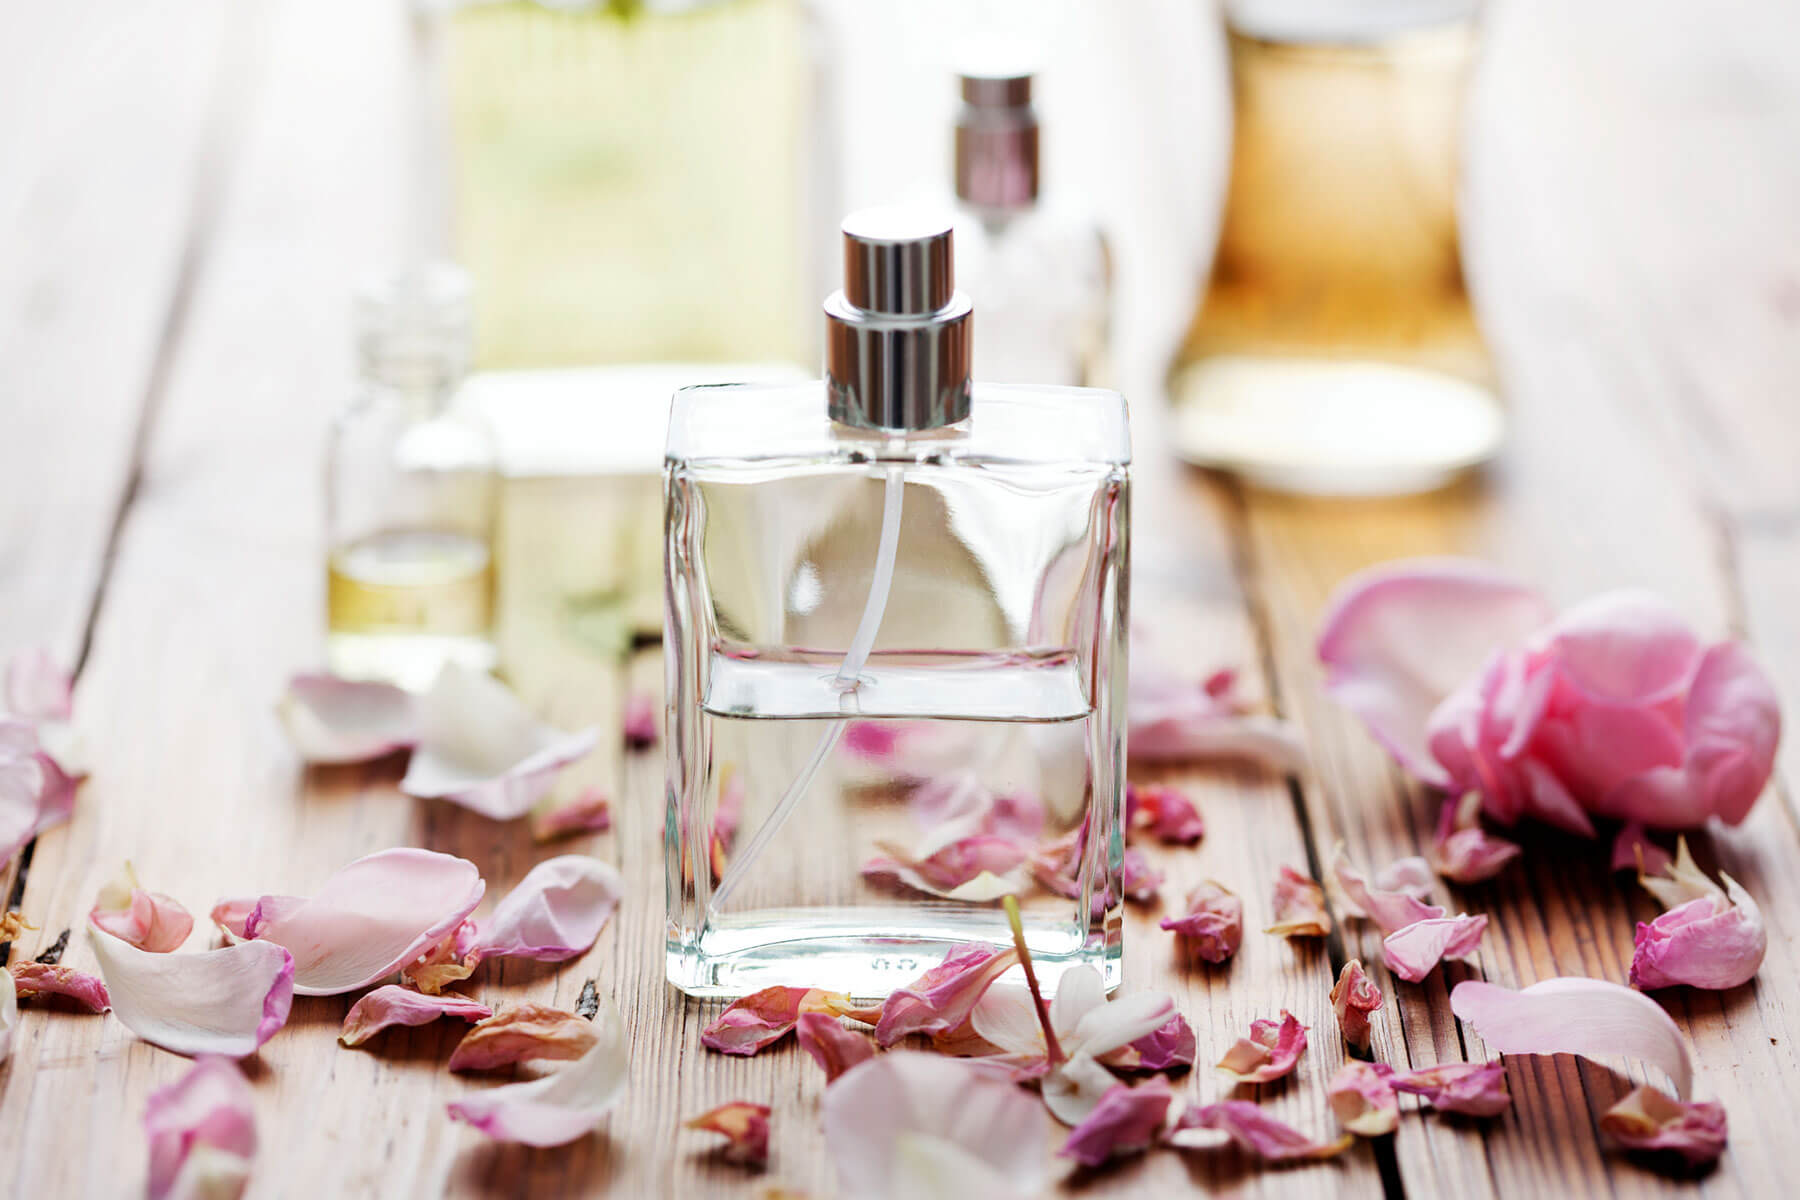 How to Optimise a Fragrance Launch Using Data Insights